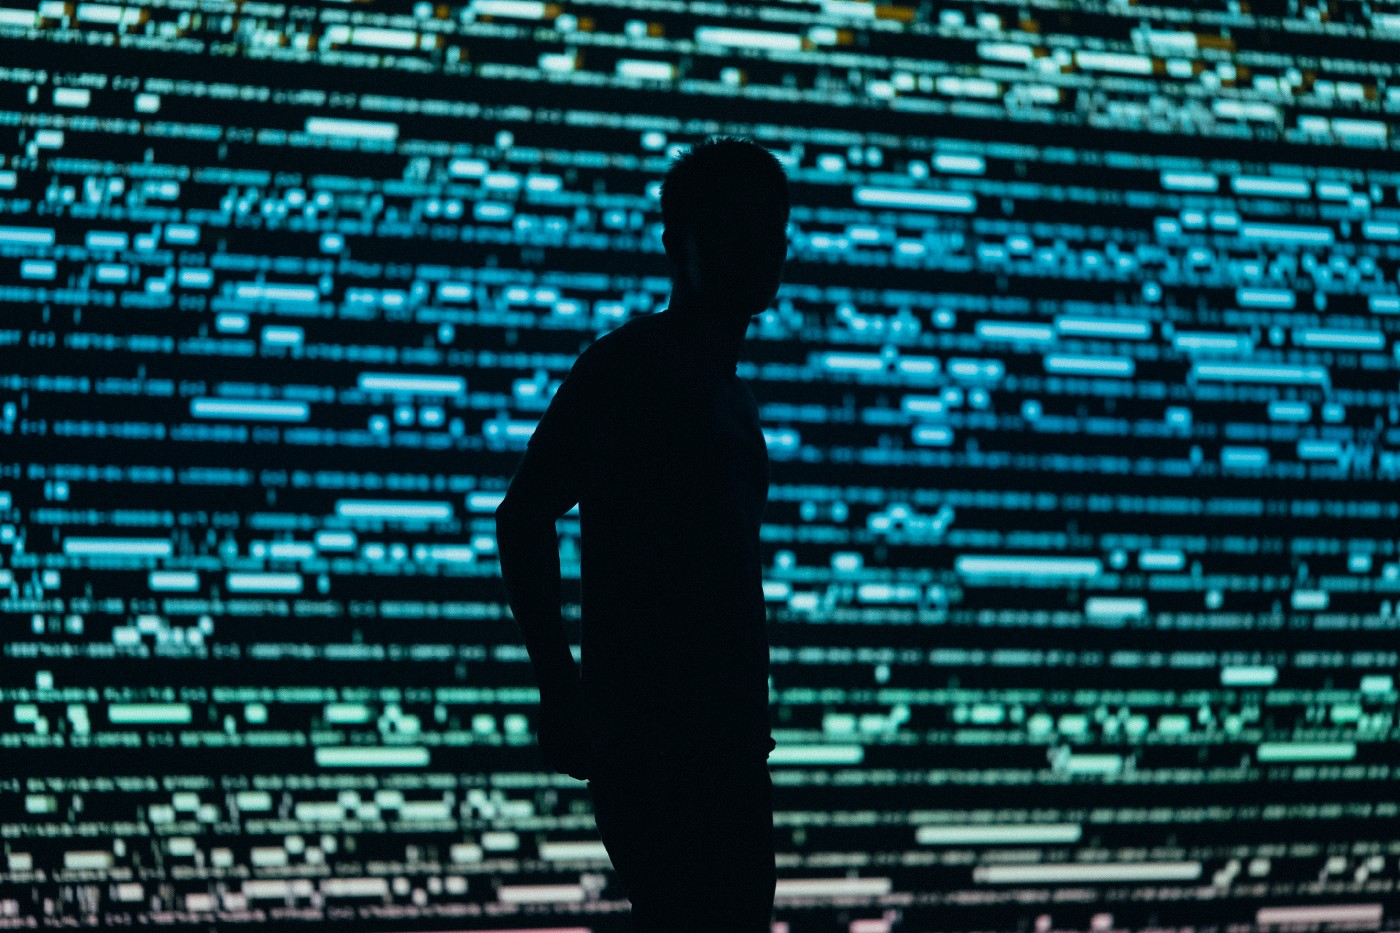 Man standing in front of wall of data